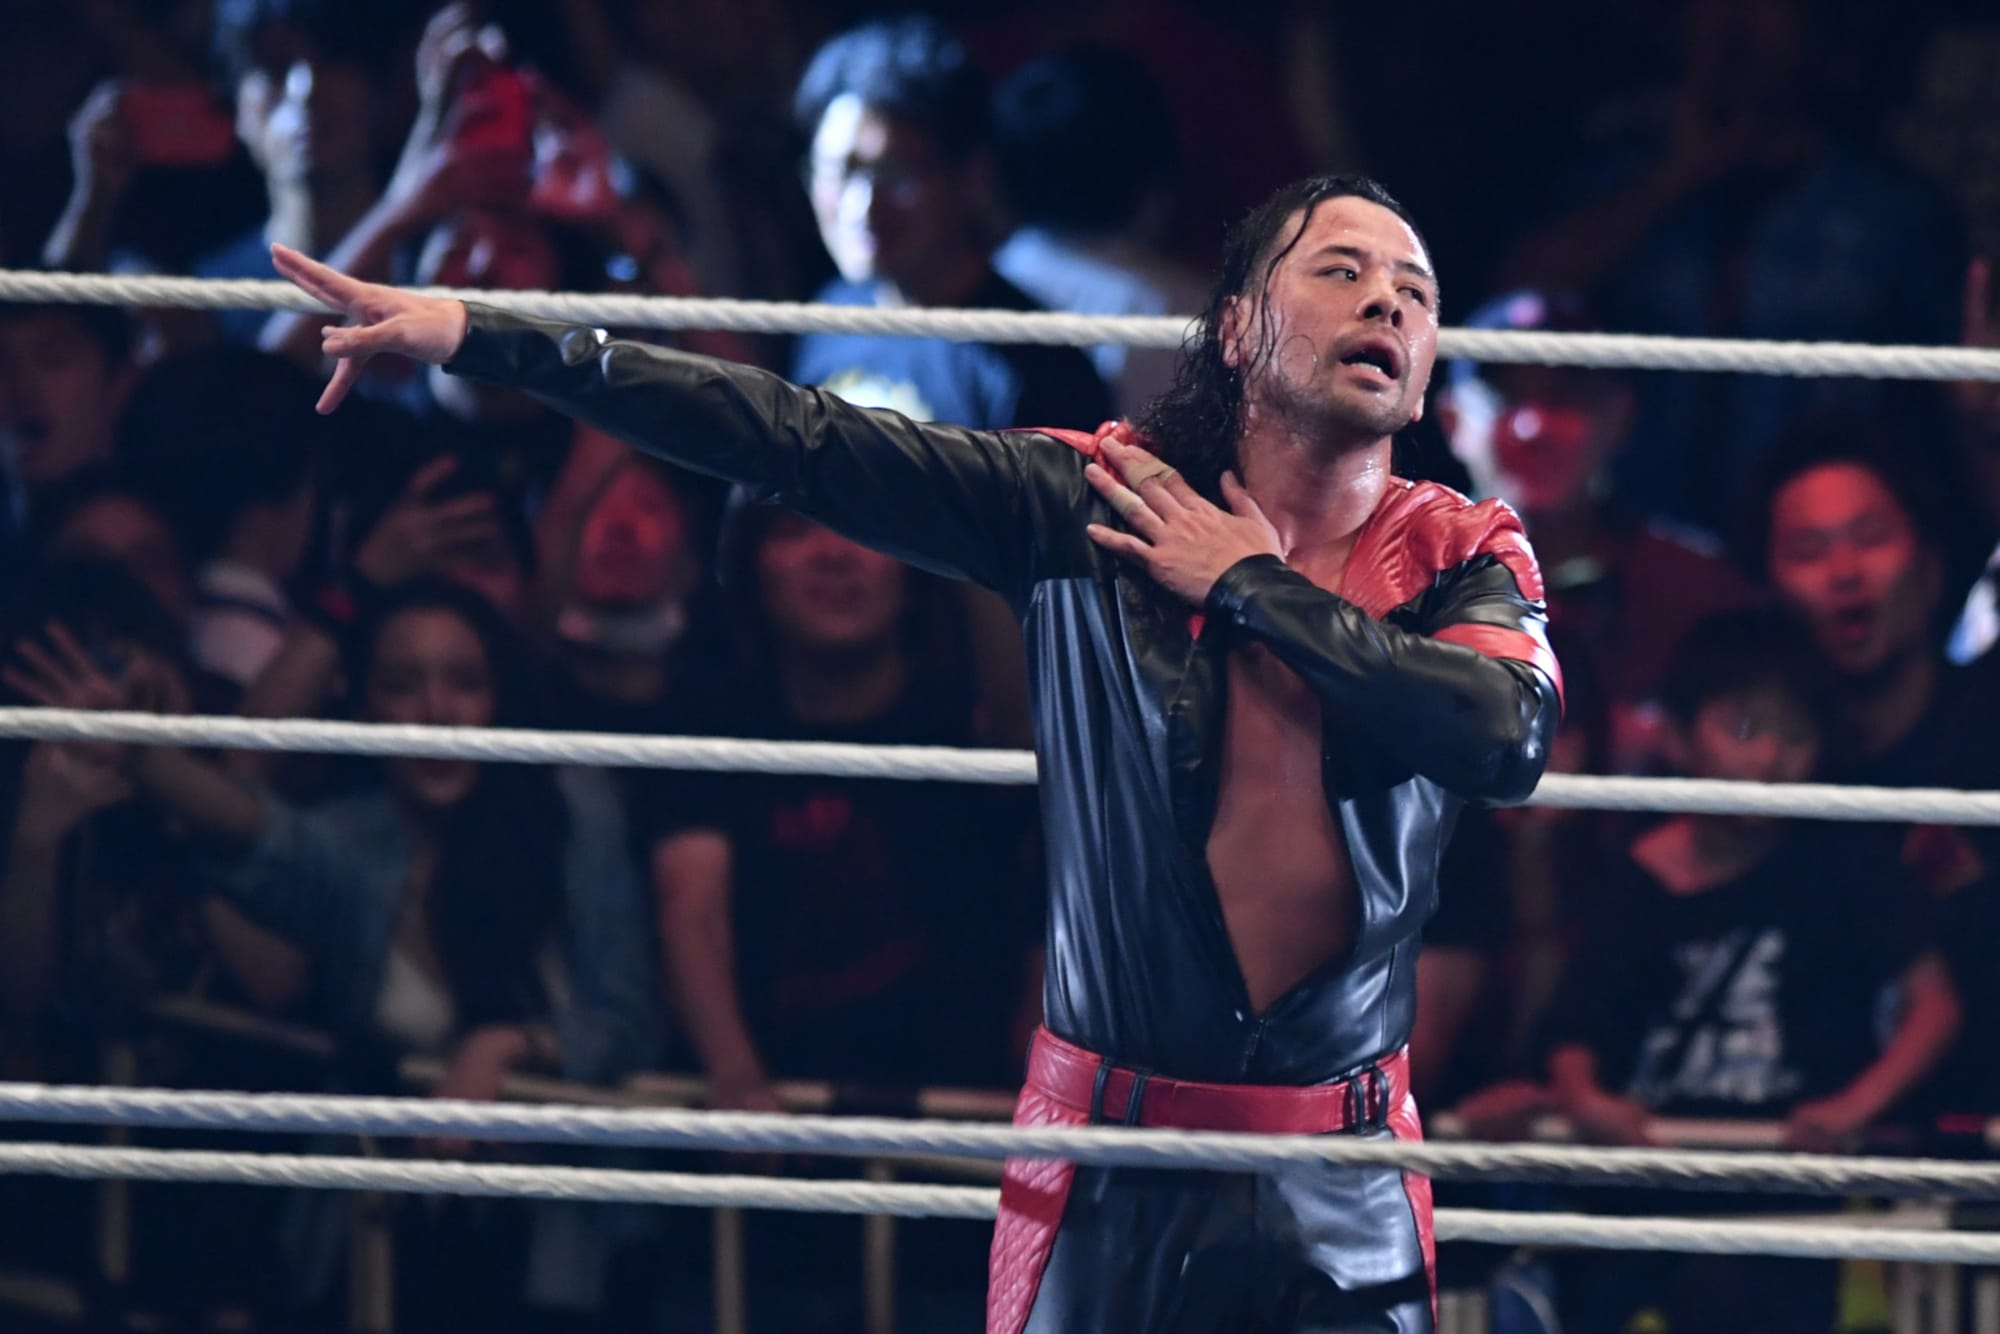 The time has come for Shinsuke Nakamura to return to his babyface roots